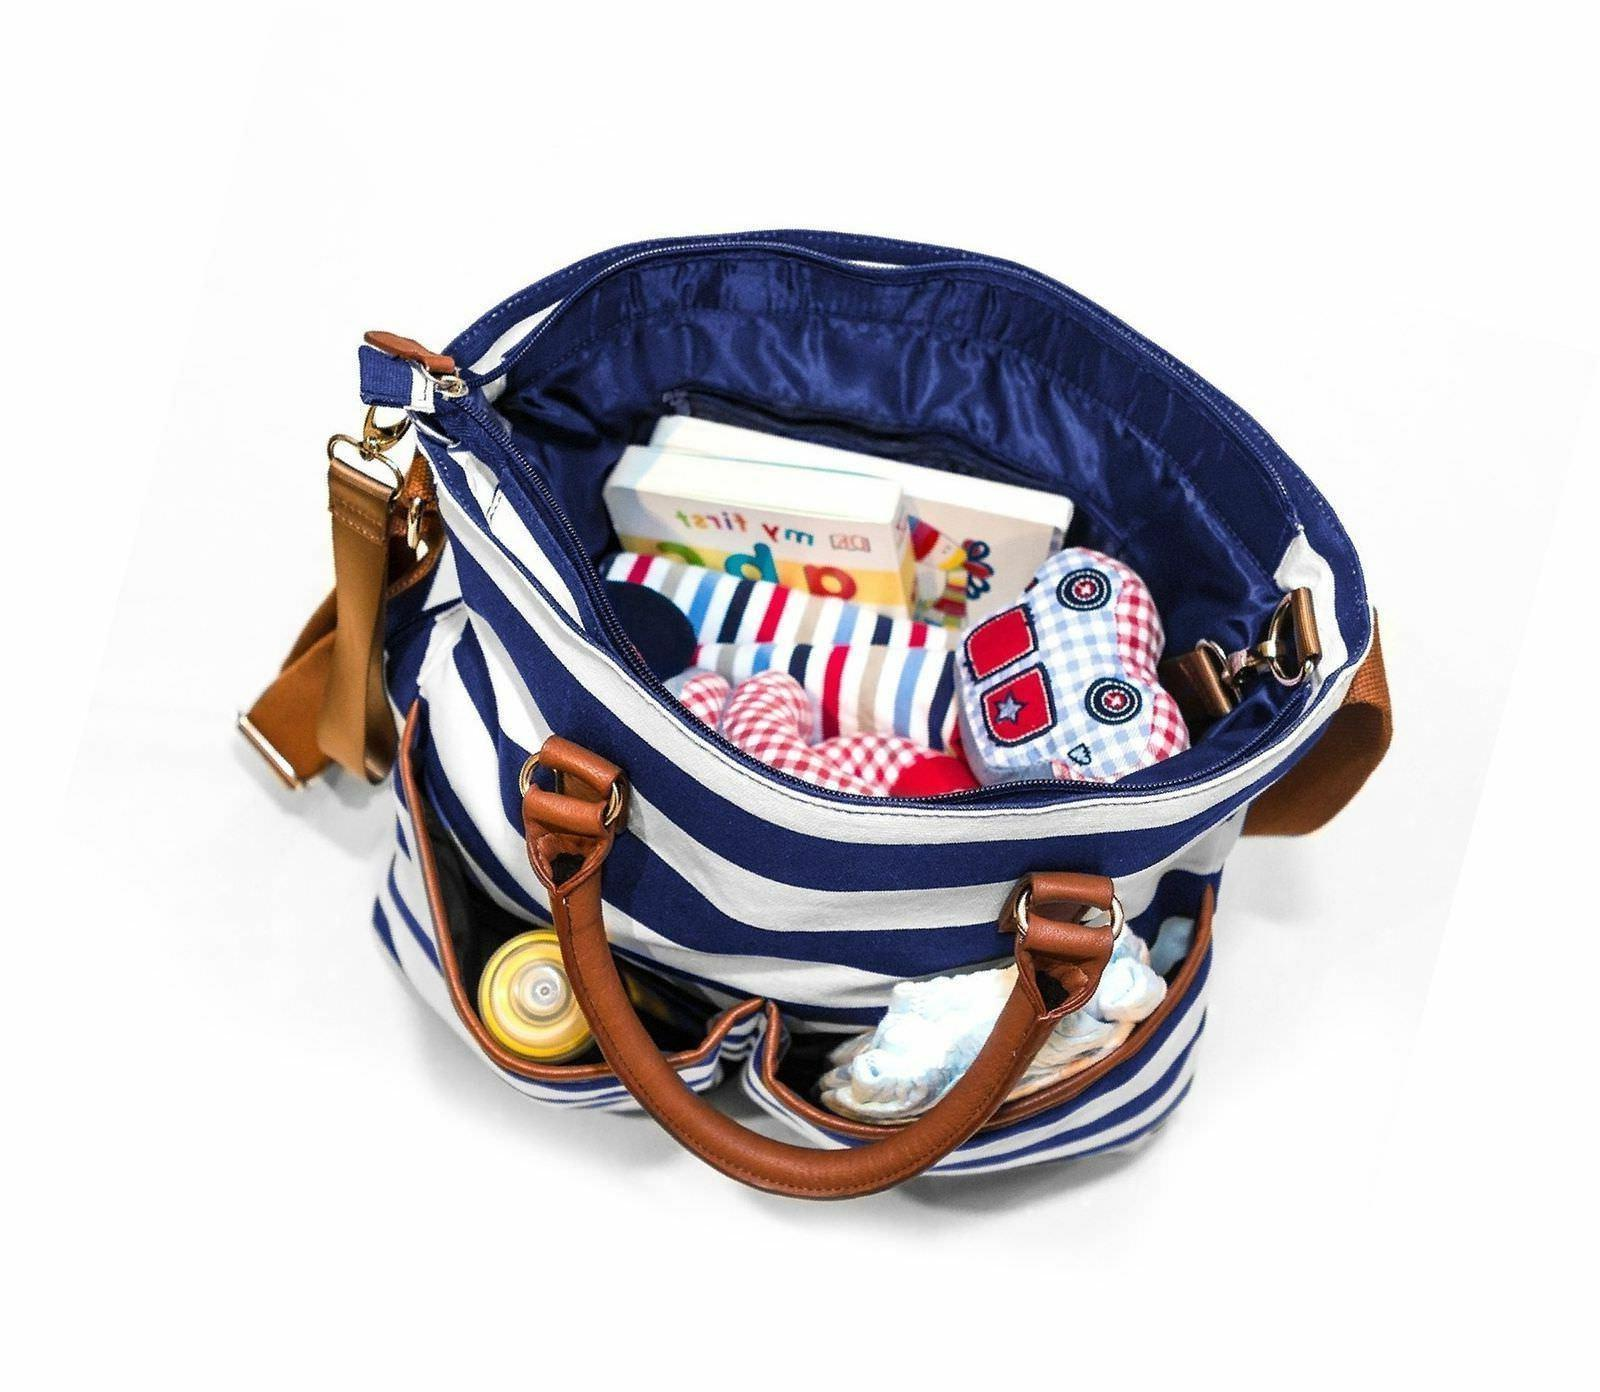 Navy and White Diaper Bag by Cub